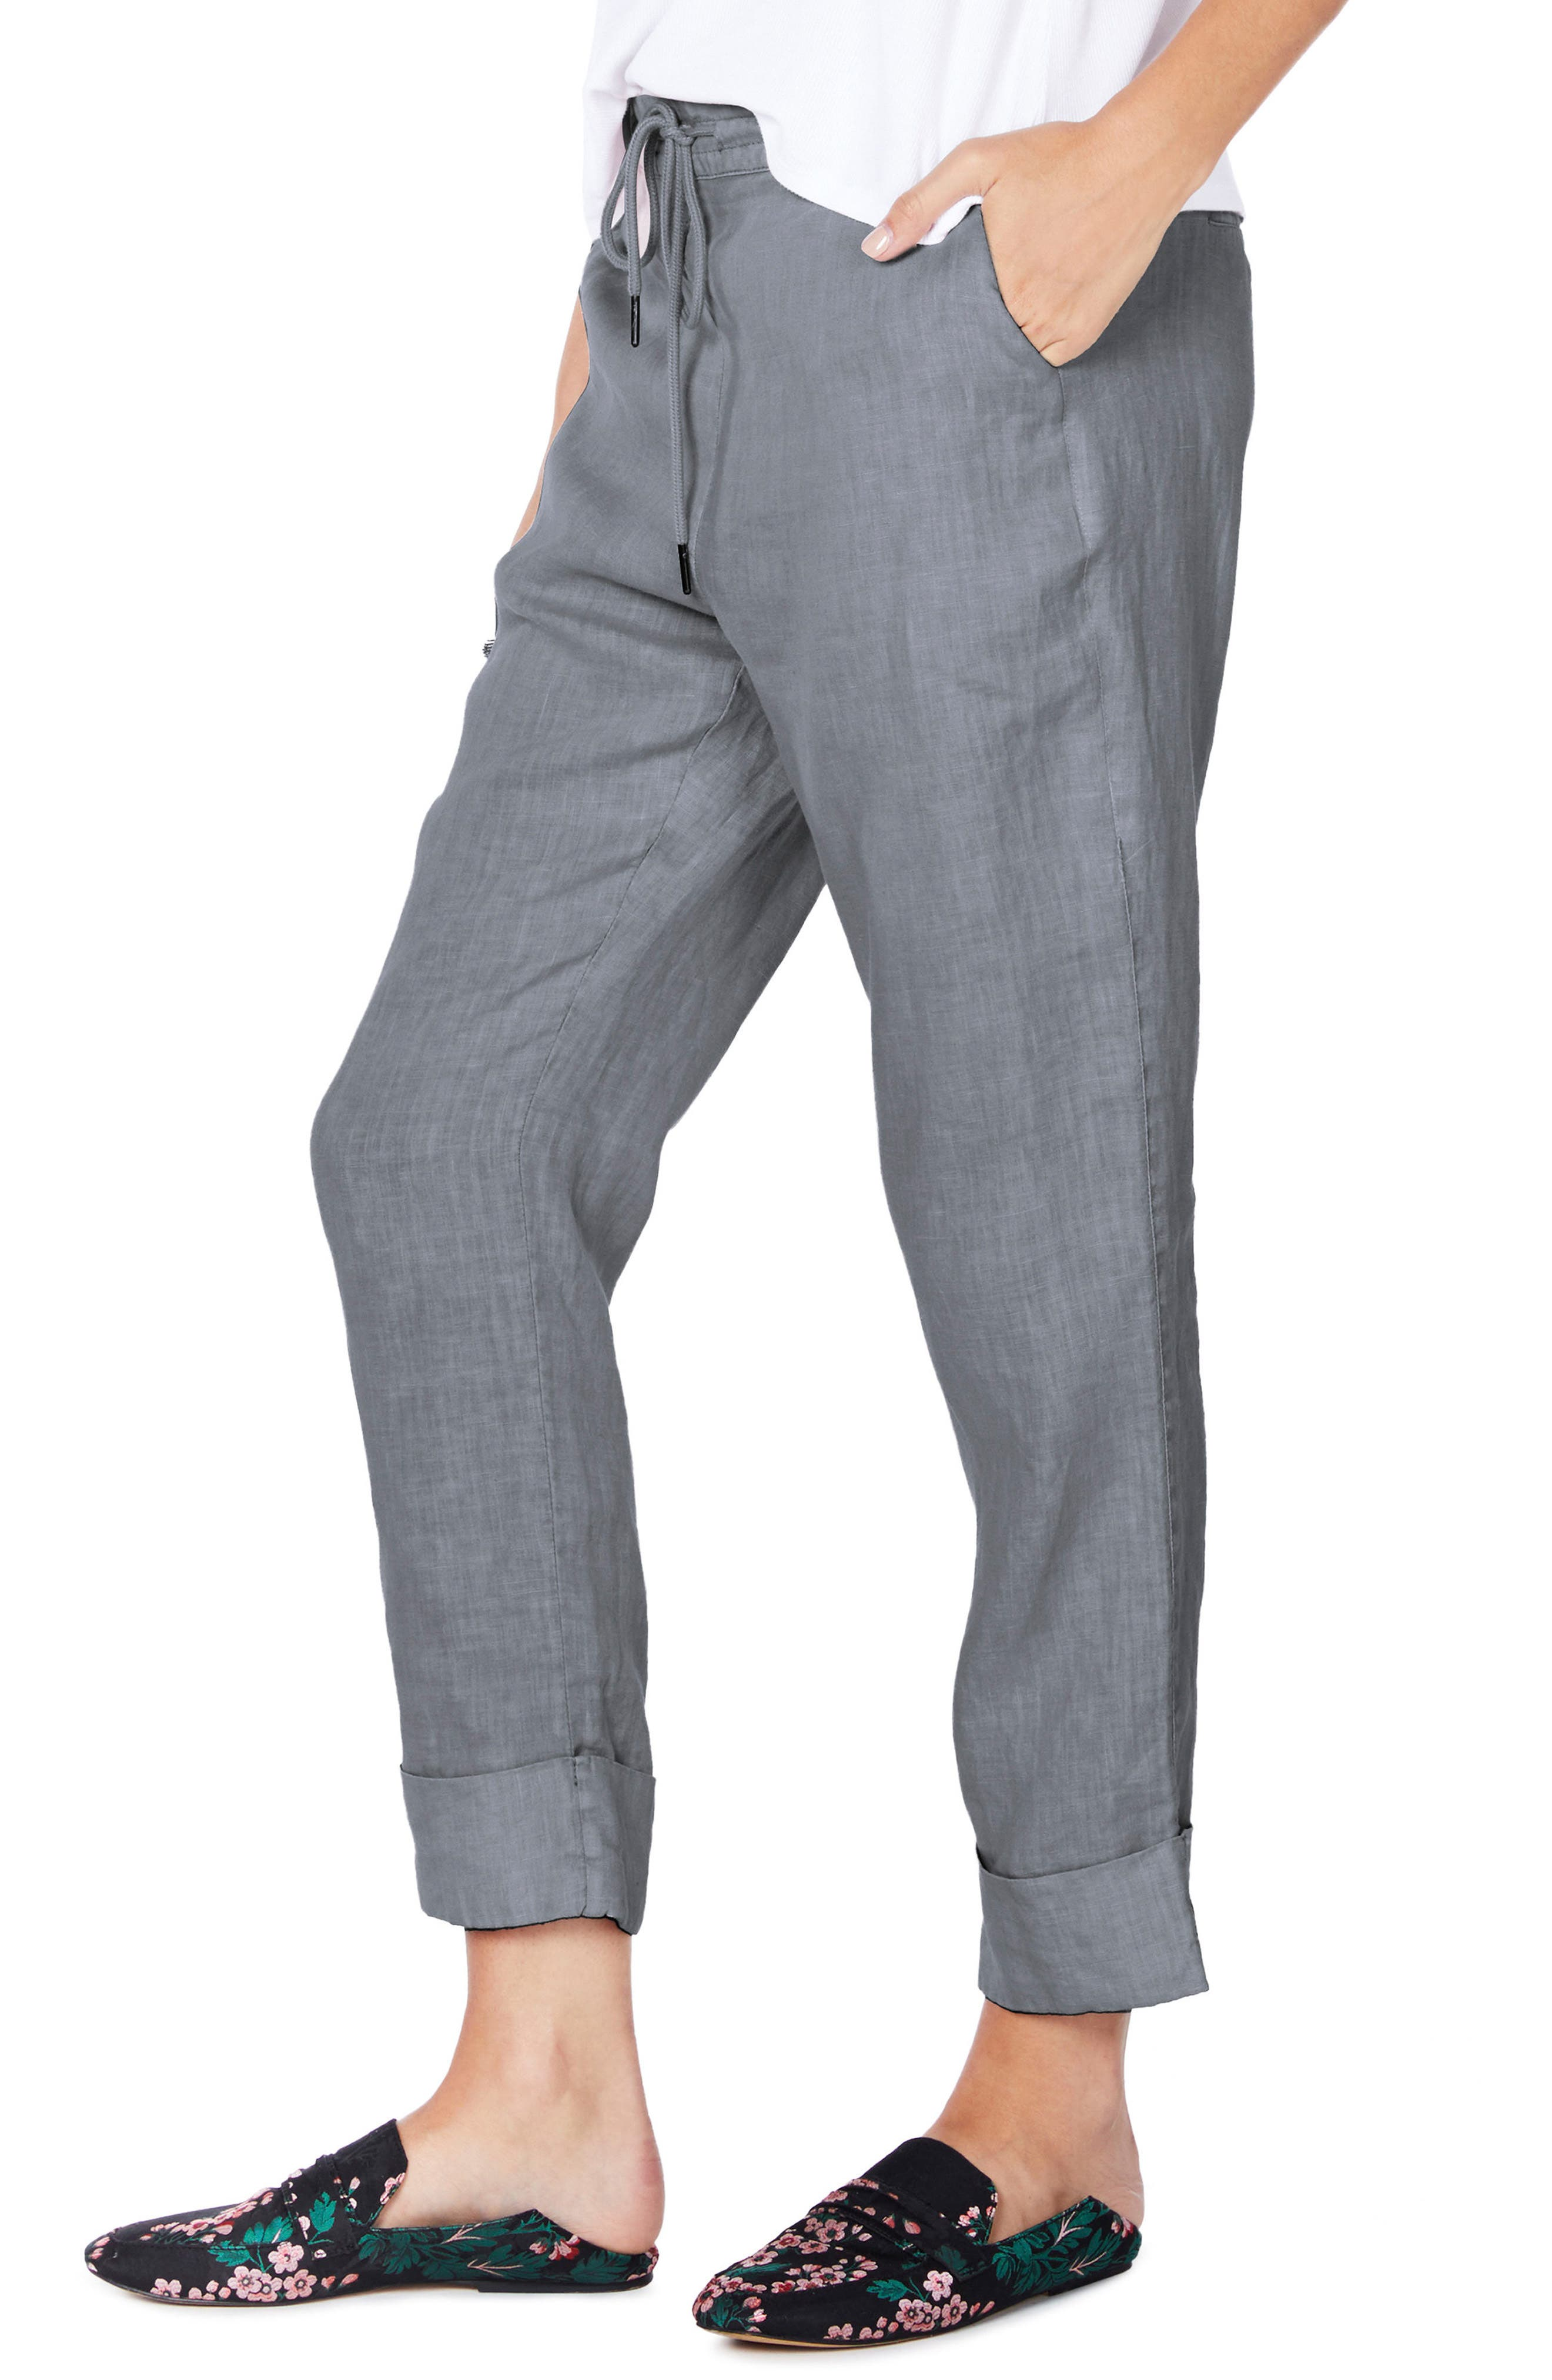 Cuffed Linen Pants,                             Alternate thumbnail 3, color,                             050